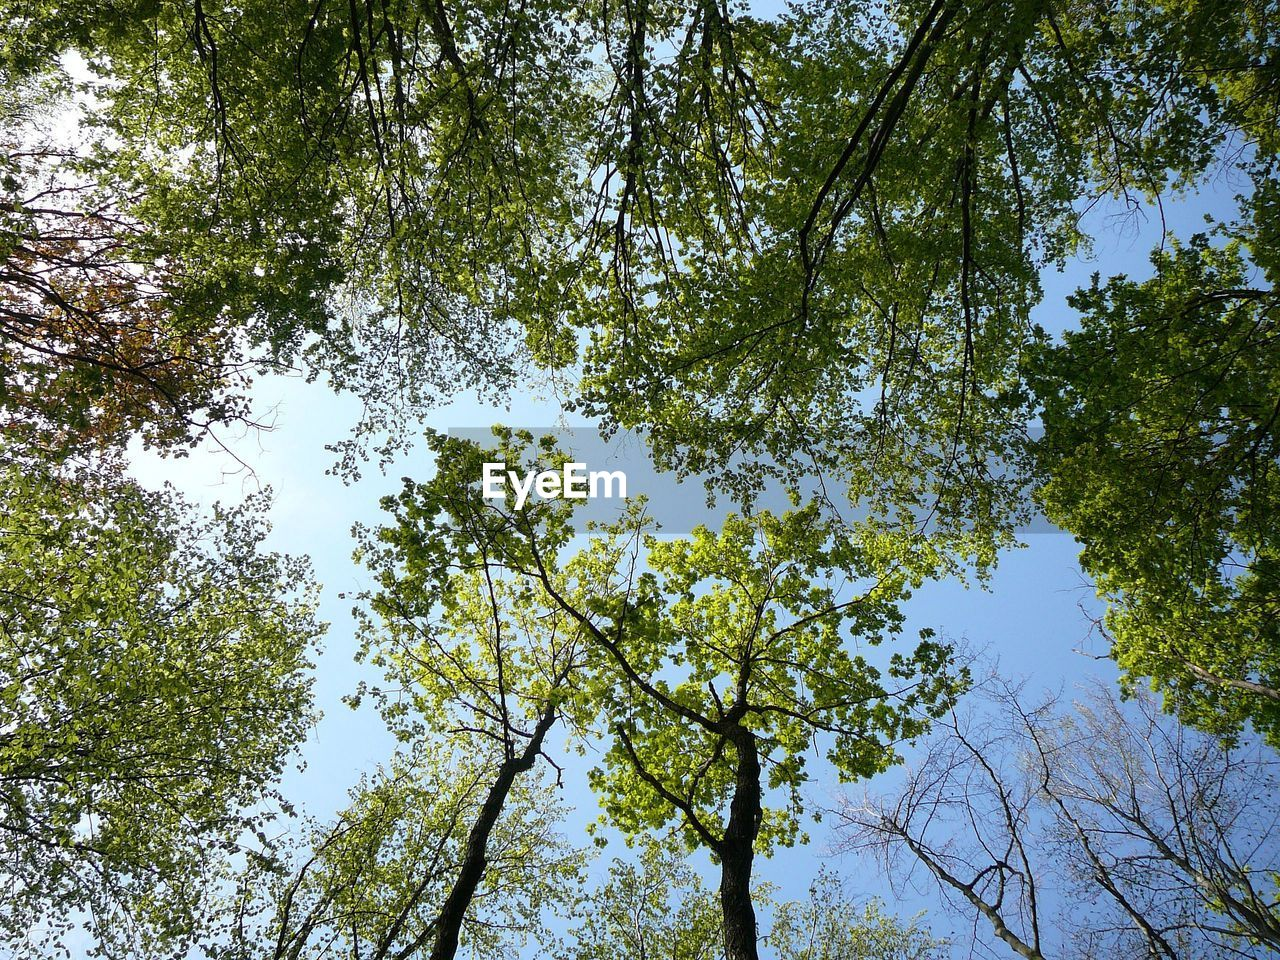 tree, plant, low angle view, growth, beauty in nature, sky, nature, branch, day, tranquility, no people, outdoors, forest, land, tree canopy, green color, idyllic, sunlight, clear sky, scenics - nature, directly below, high, spring